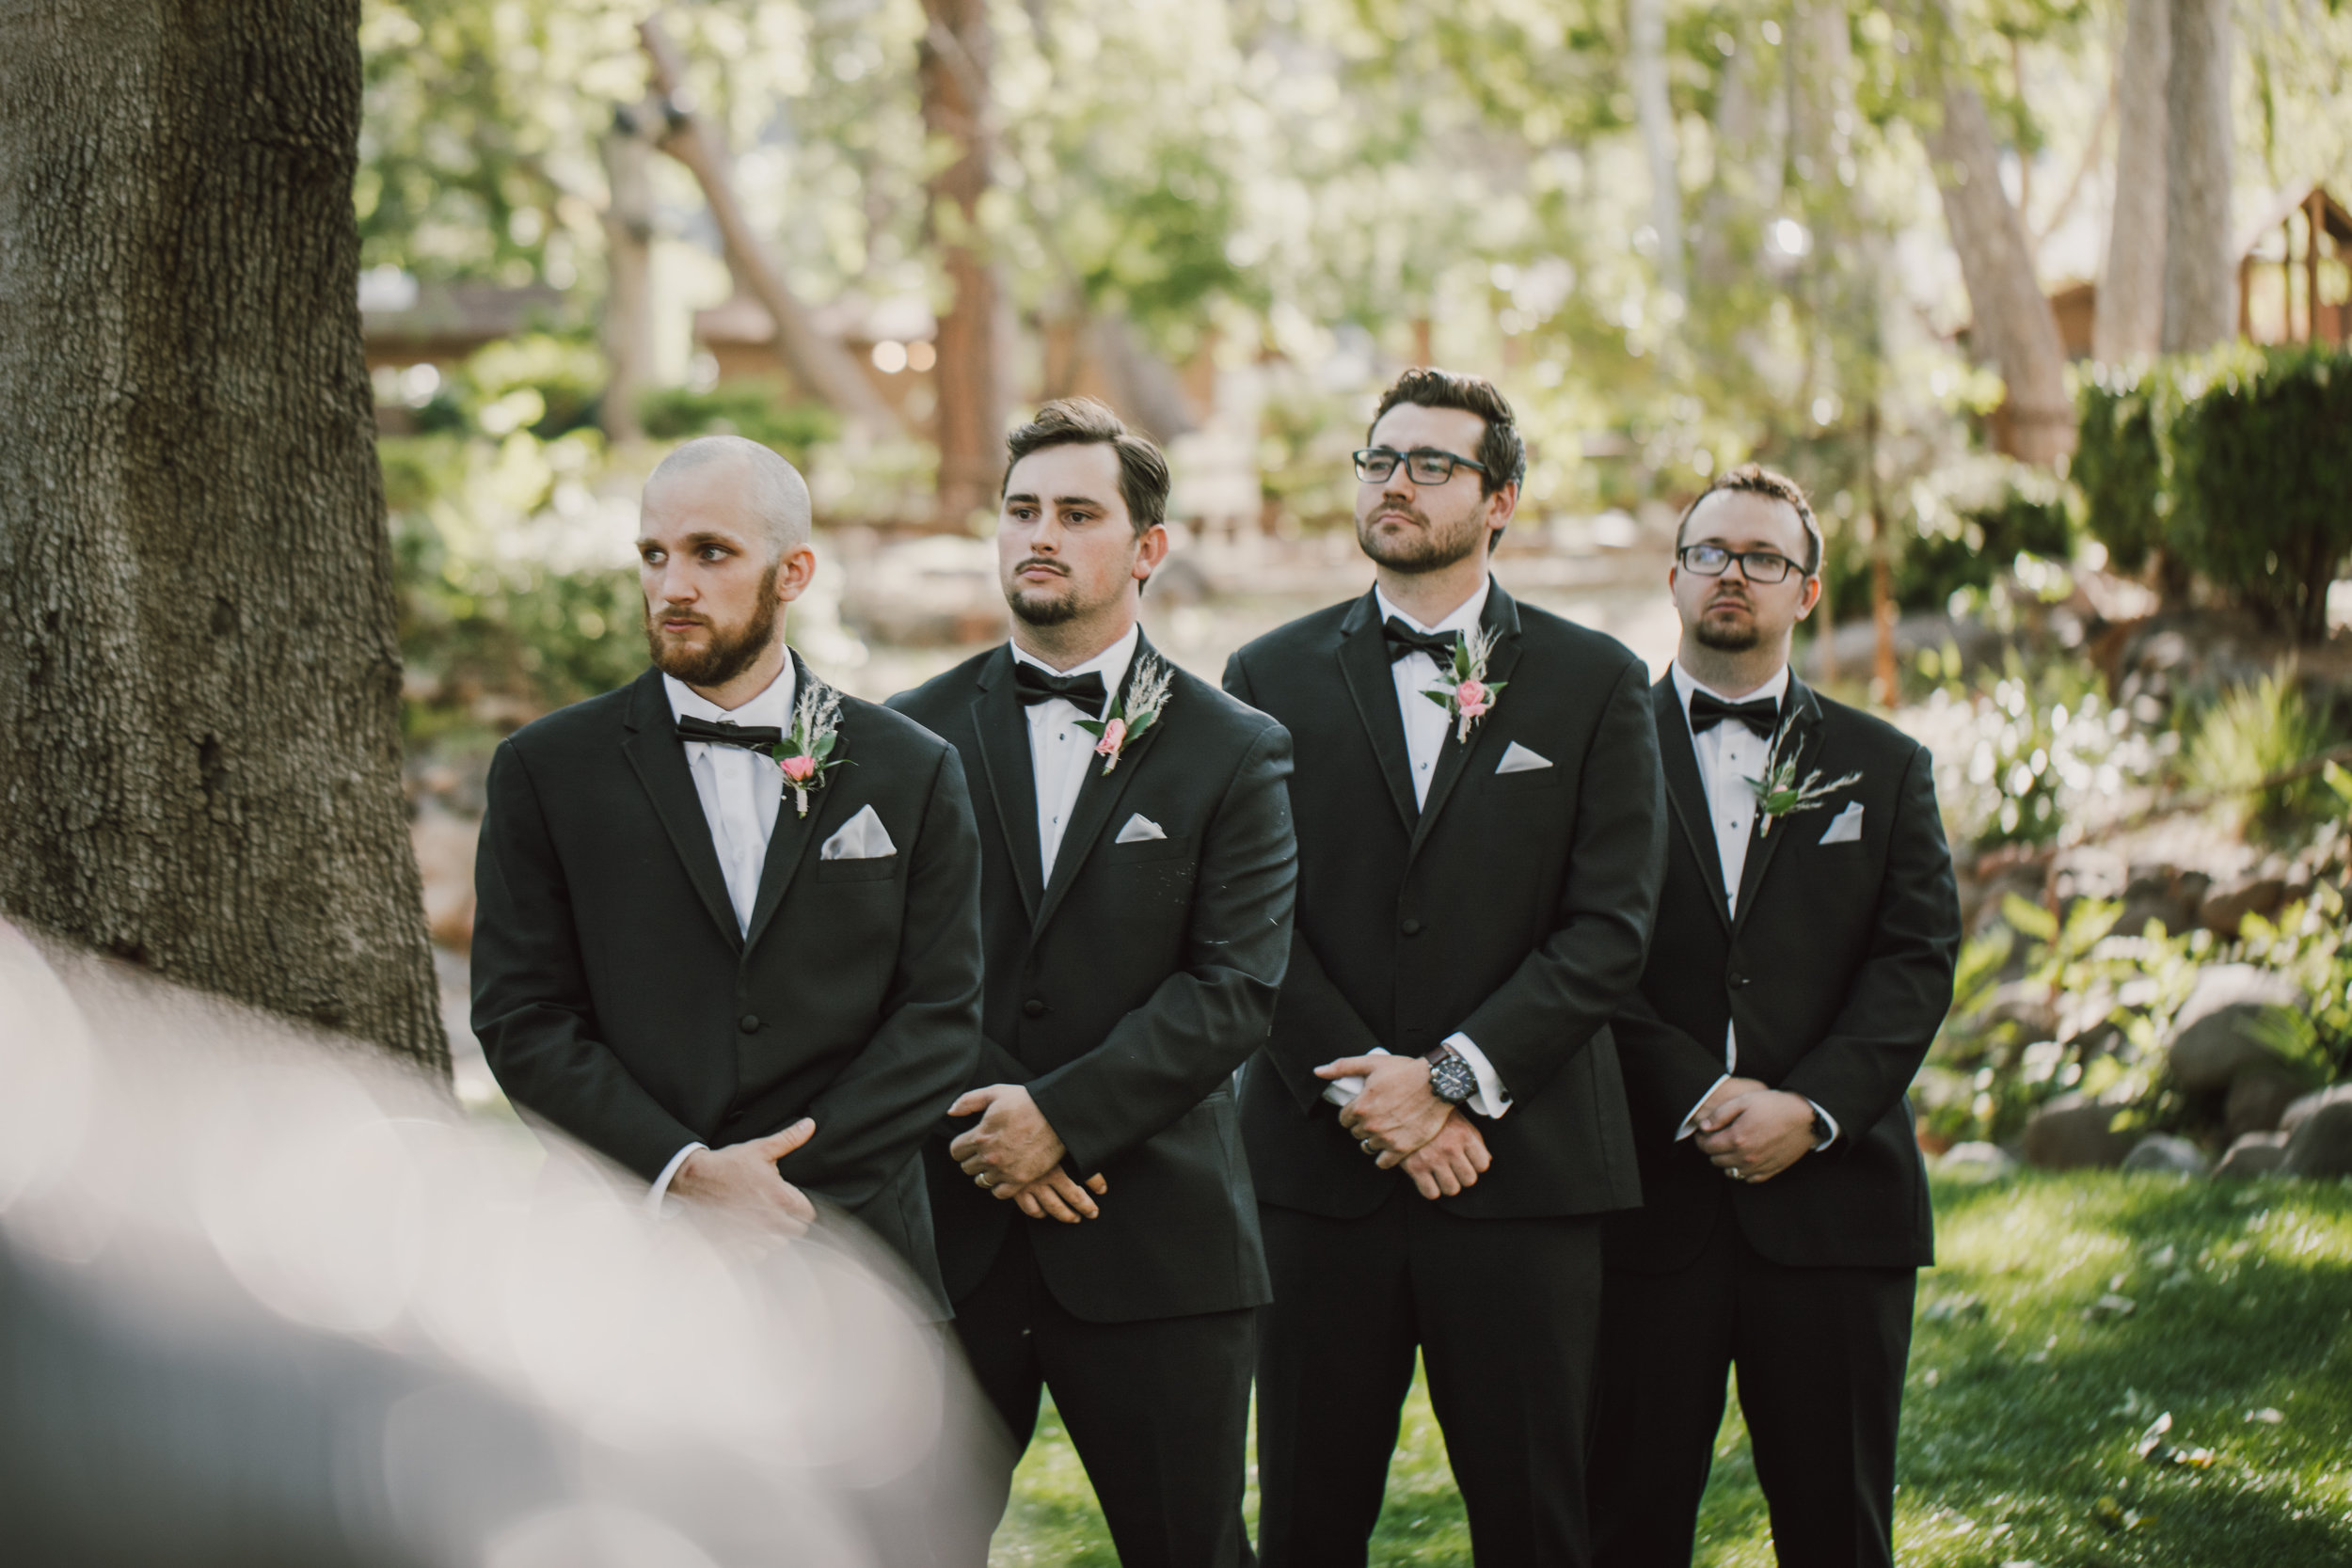 Los Abrigados Wedding - Arizona Florist Phoenix Scottsdale Sedona - Groomsmen in Classic Black Suits